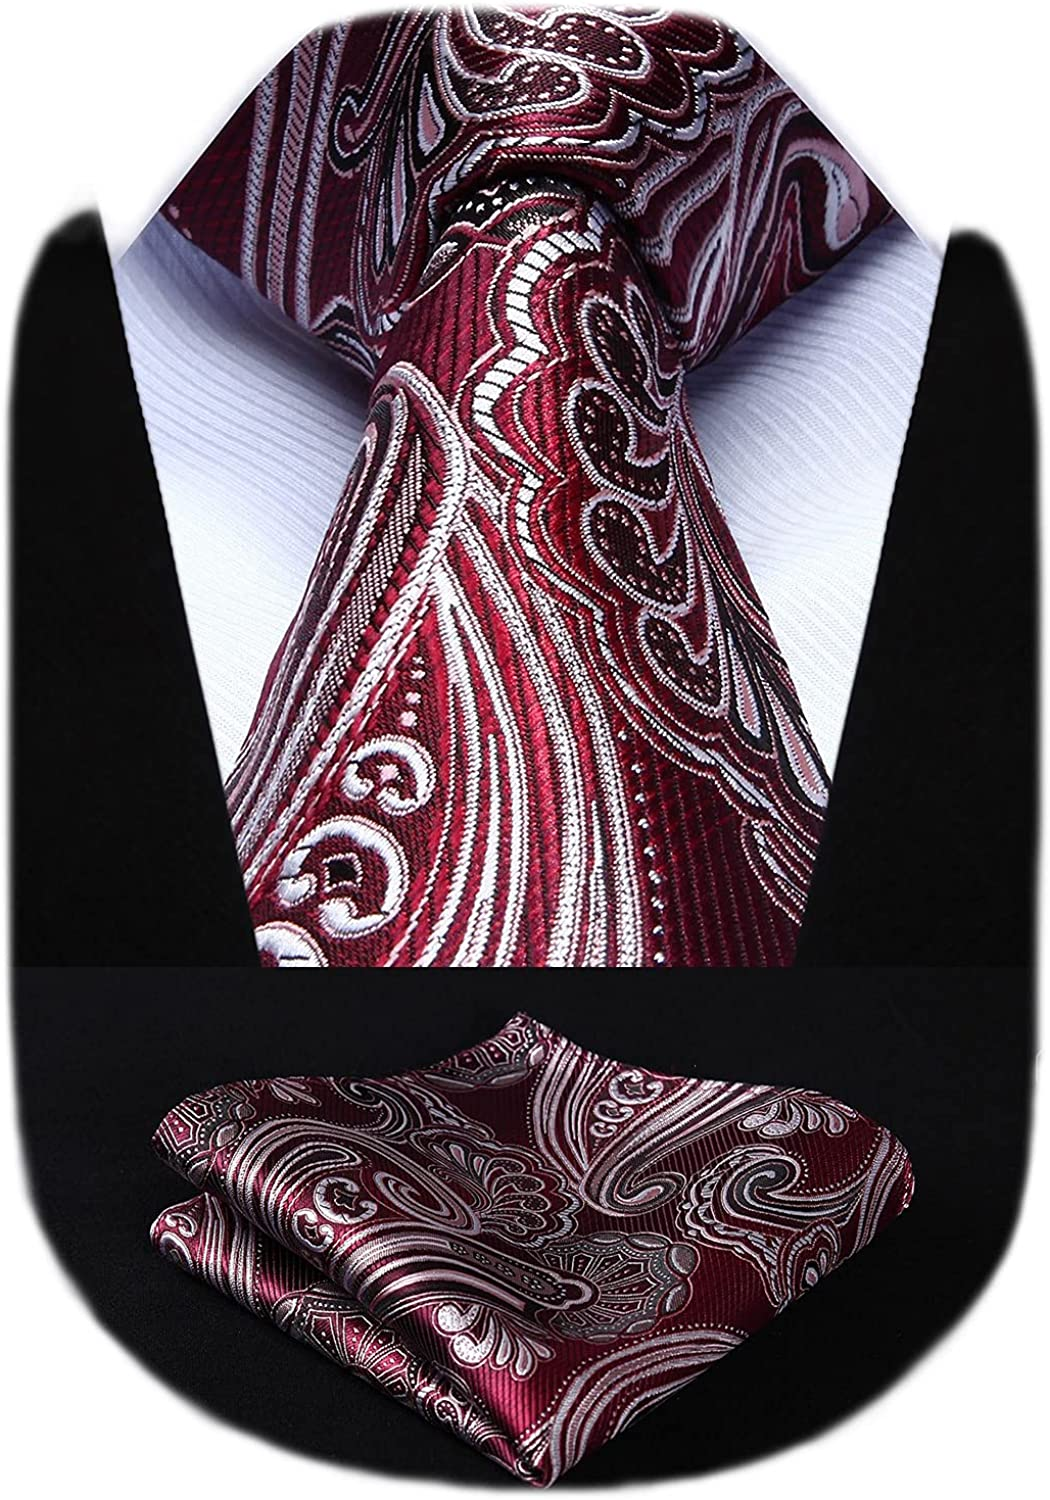 HISDERN Mens Ties and Pocket Square Set Paisley Floarl Woven Jacquard Tie Classic Formal Necktie for Wedding Party